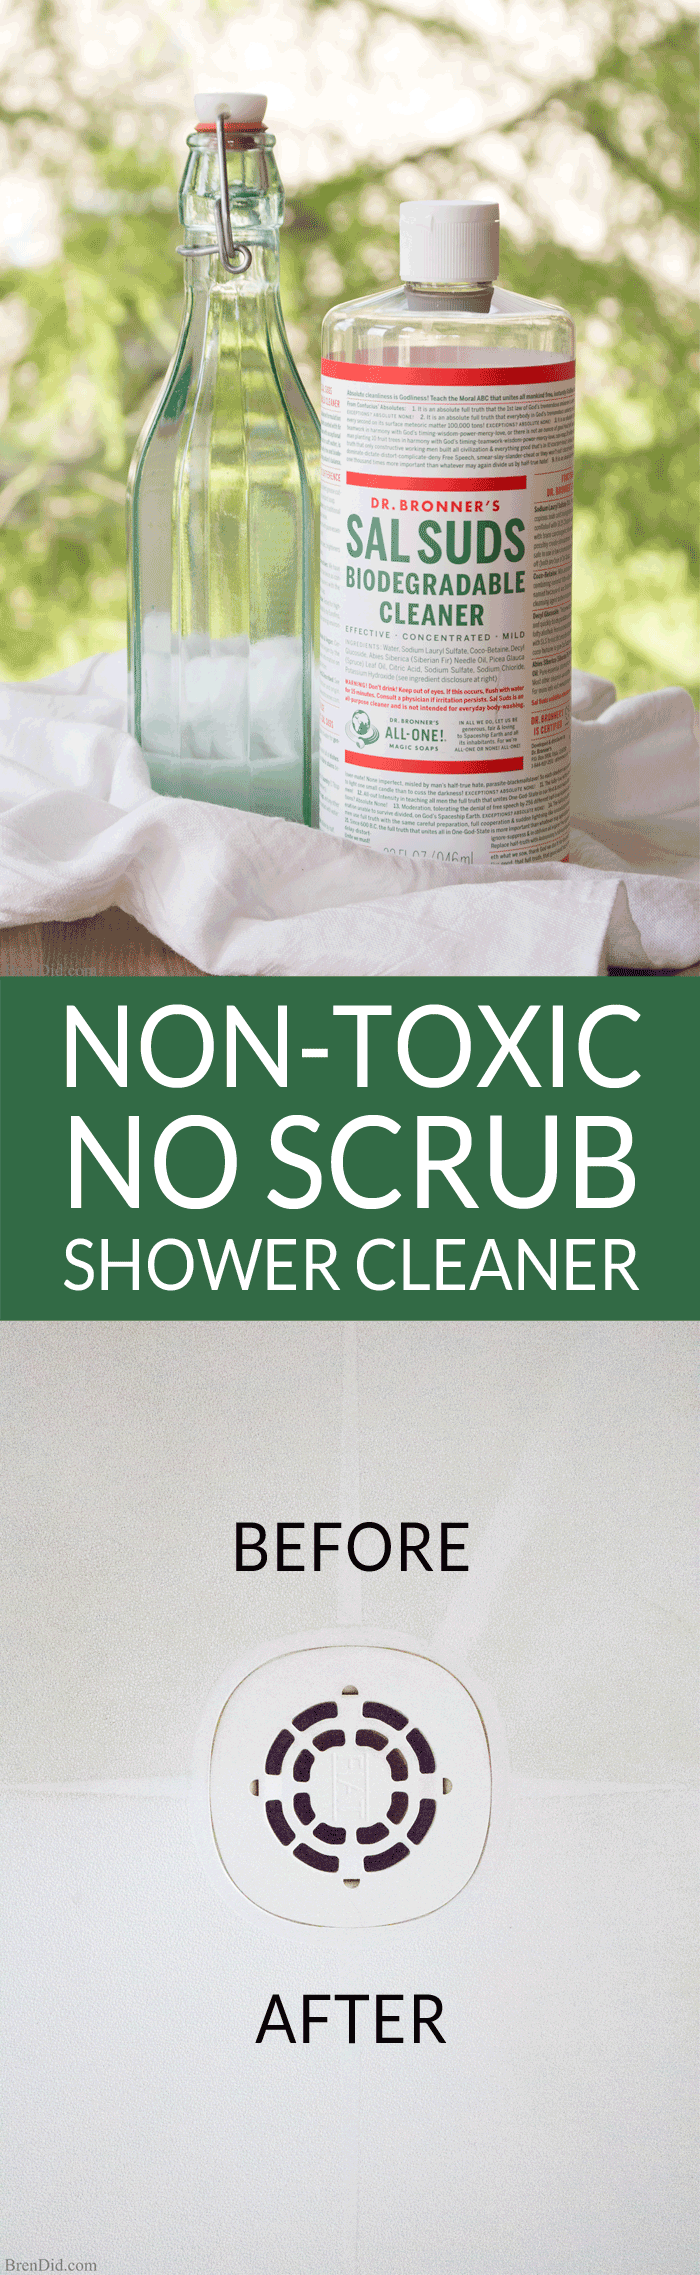 Non-toxic no scrub shower cleaner melts soap scum, tub rings, and shower buildup, no scrub needed! Uses only two natural ingredients.